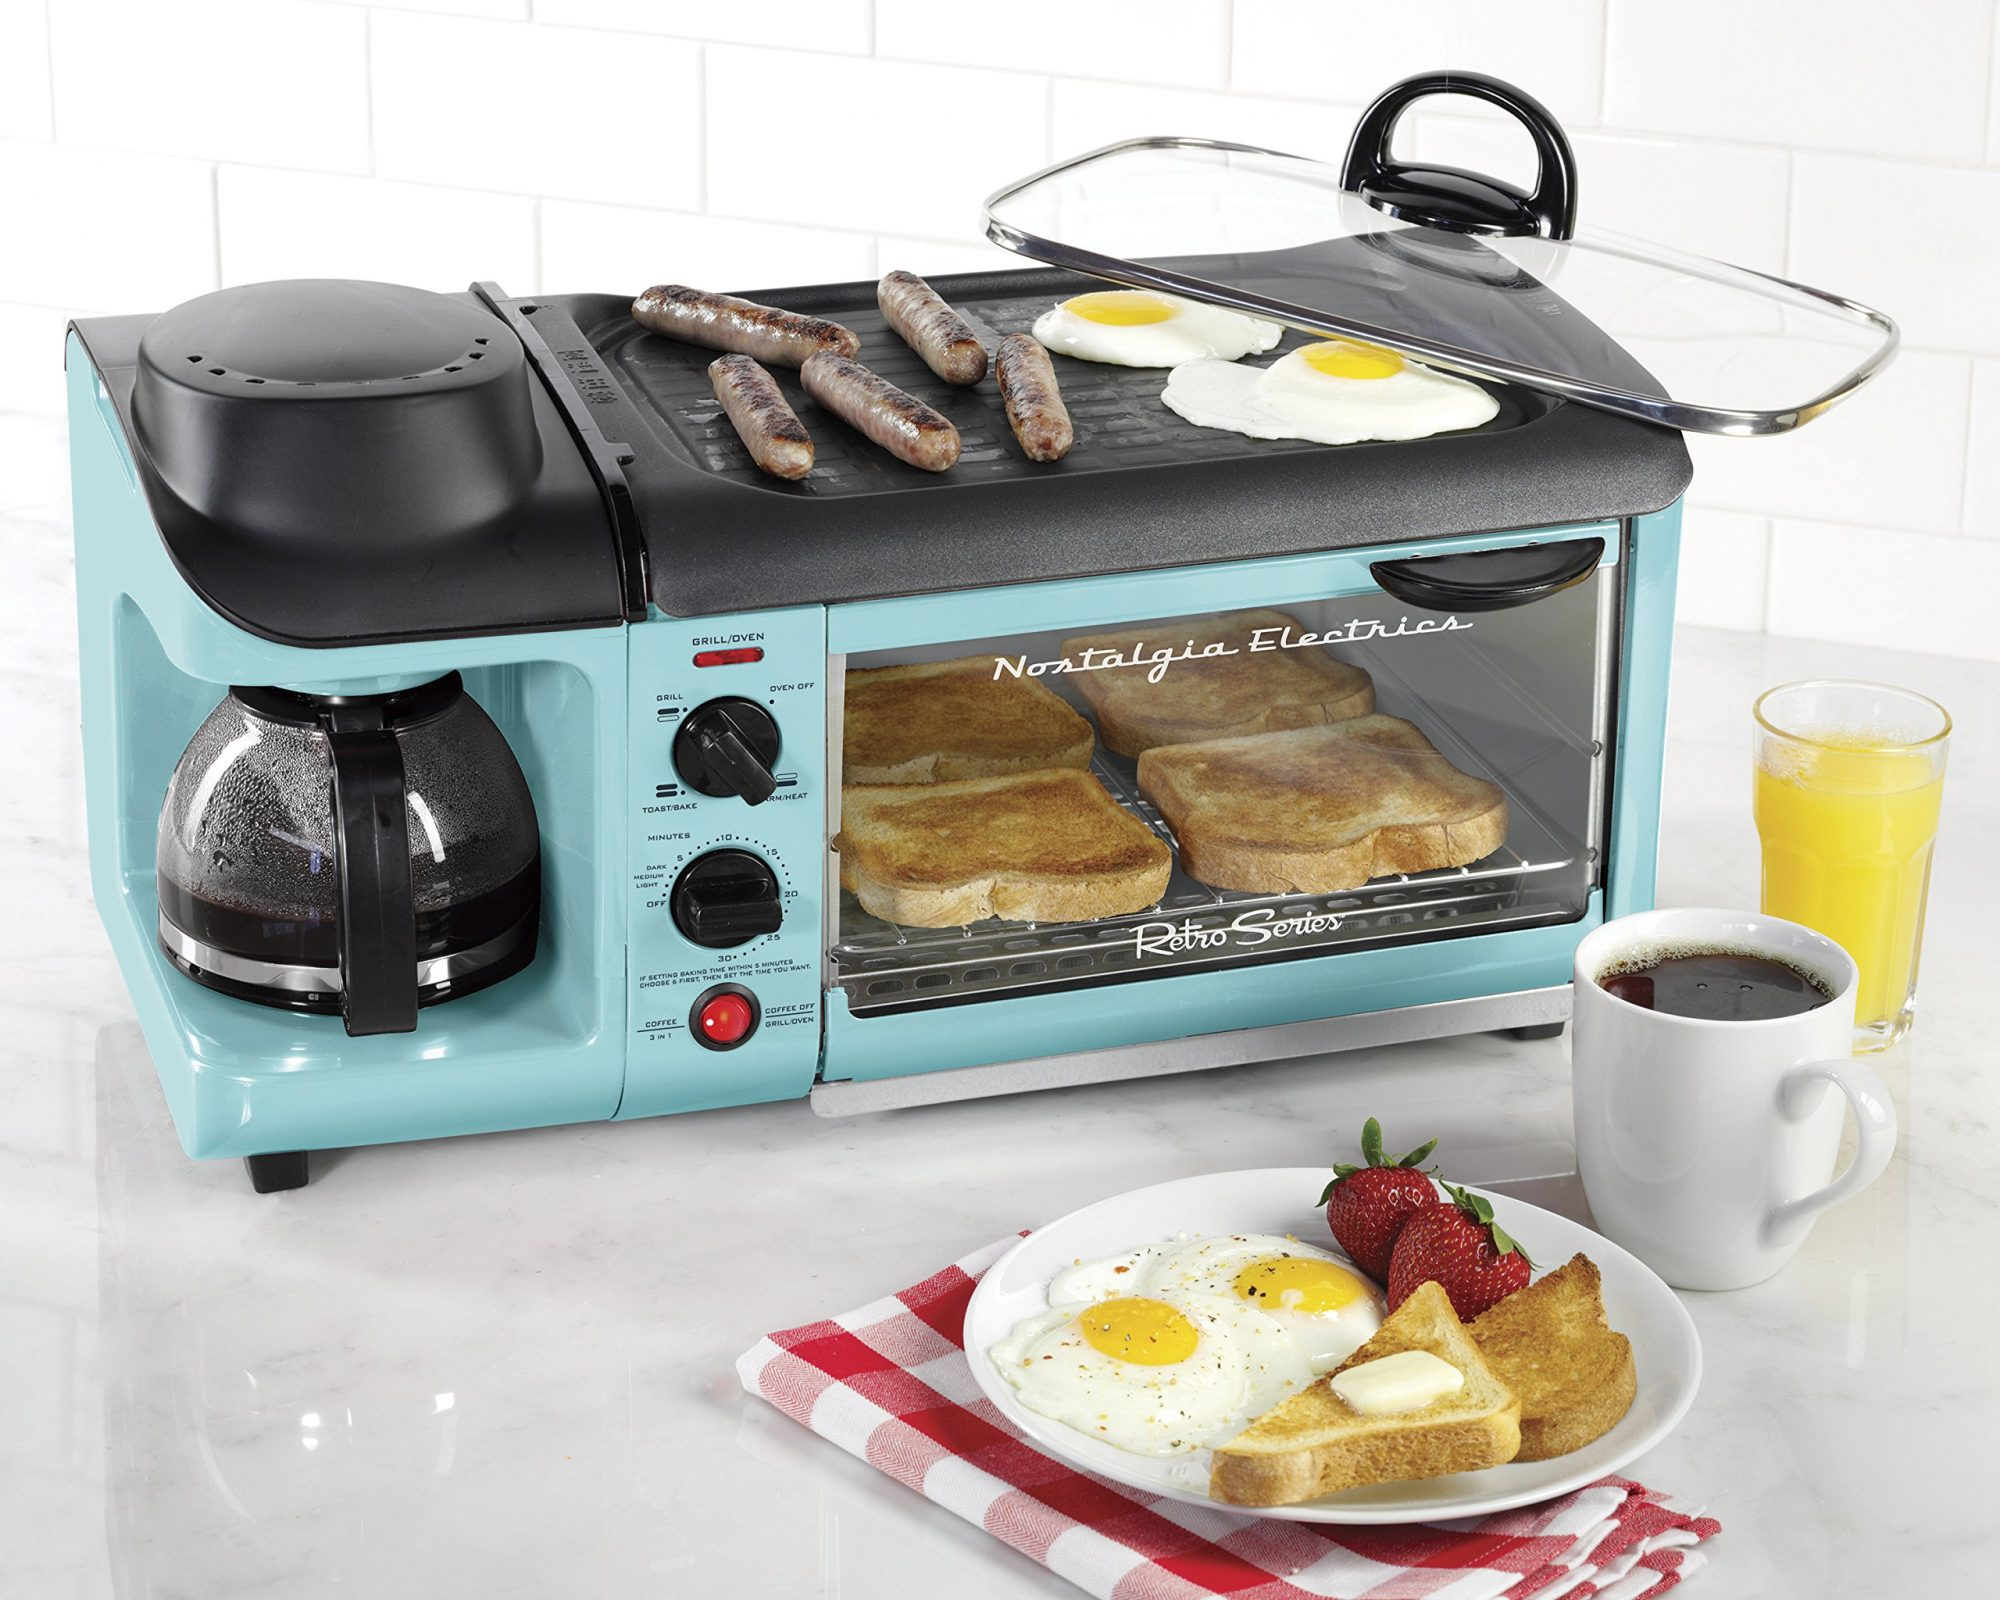 EC: This 3-in-1 Breakfast Machine Could Replace Your Kitchen